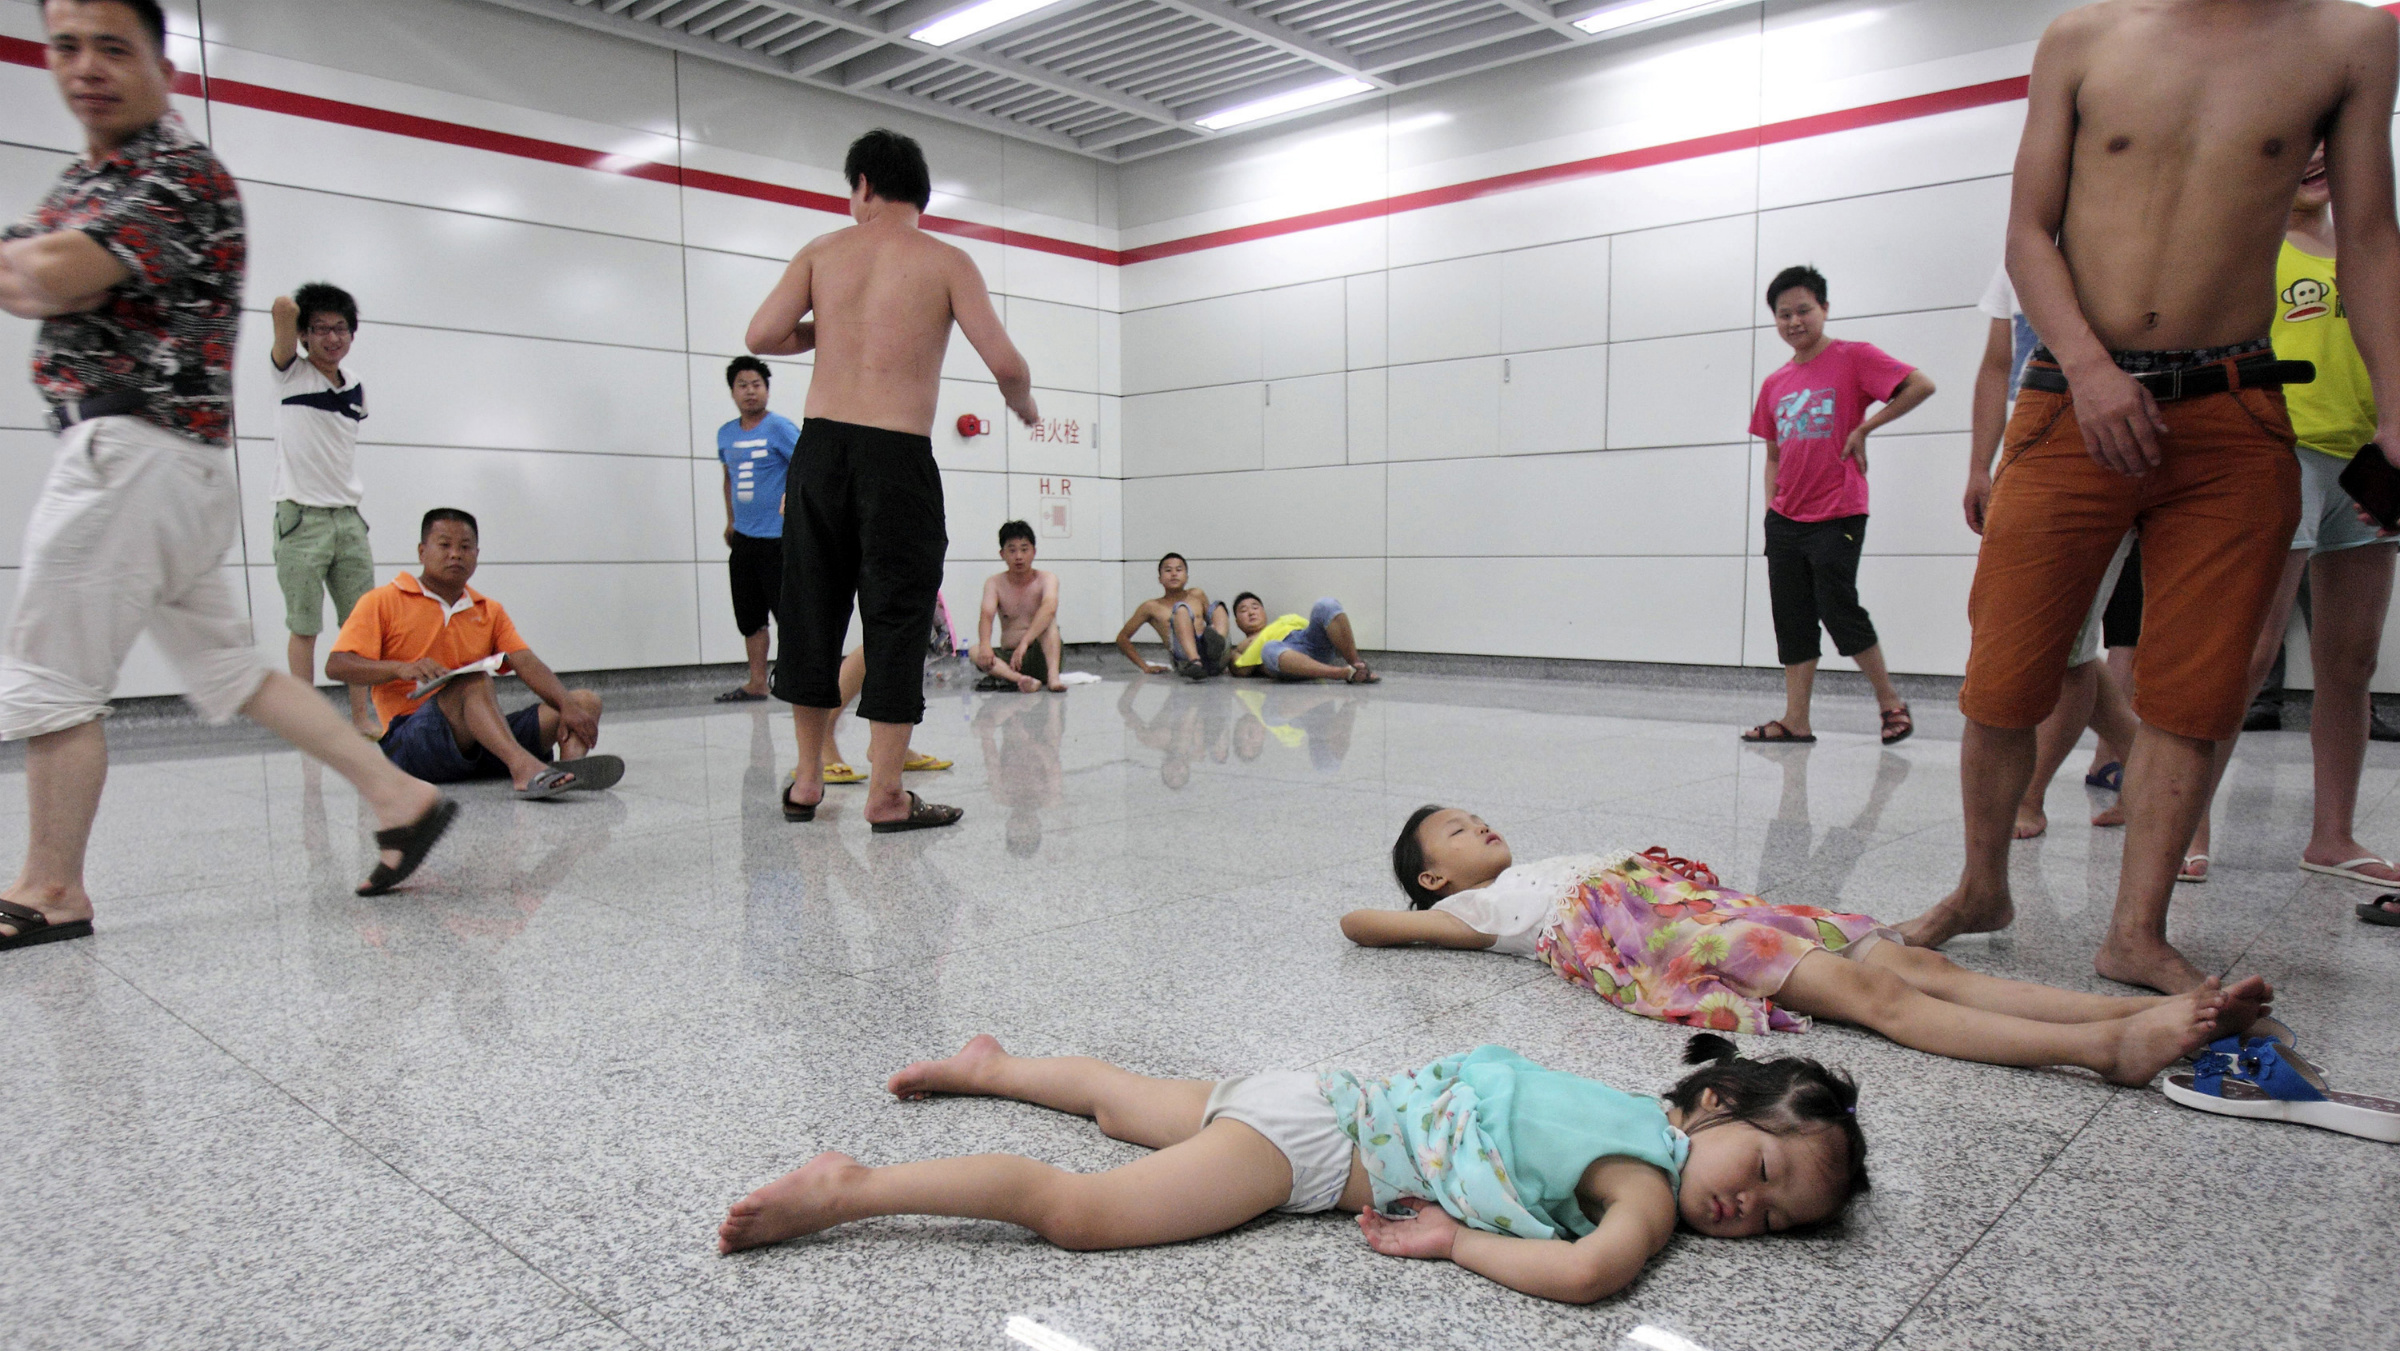 Children sleep on the floor of the Qiaosi subway station in Hangzhou, Zhejiang province July 25, 2013. More than 600 people cooled off inside the subway station as temperatures in the city hit a high of 40 degrees Centigrade during a regional power outage on Thursday. Picture taken July 25, 2013. REUTERS/Stringer